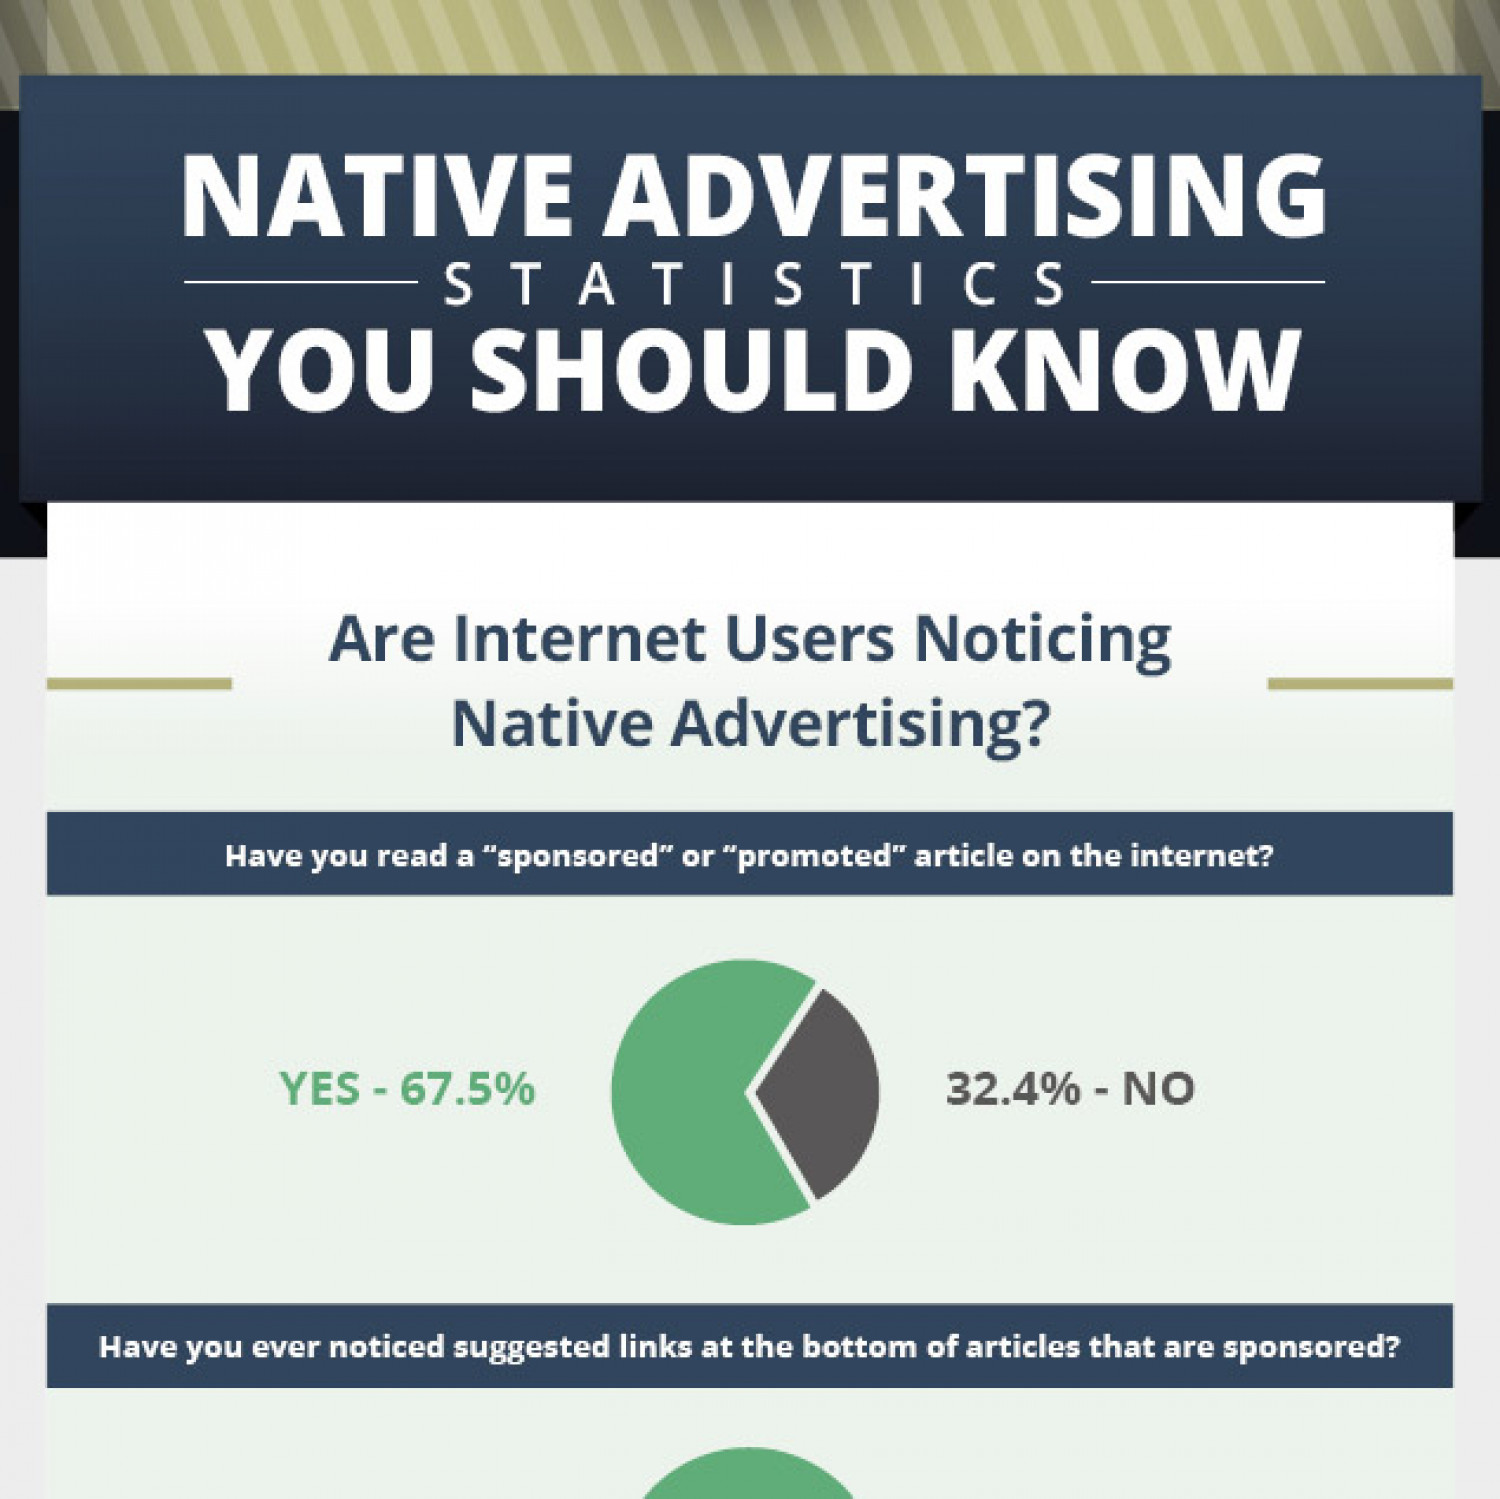 Native Advertising Statistics You Should Know Infographic